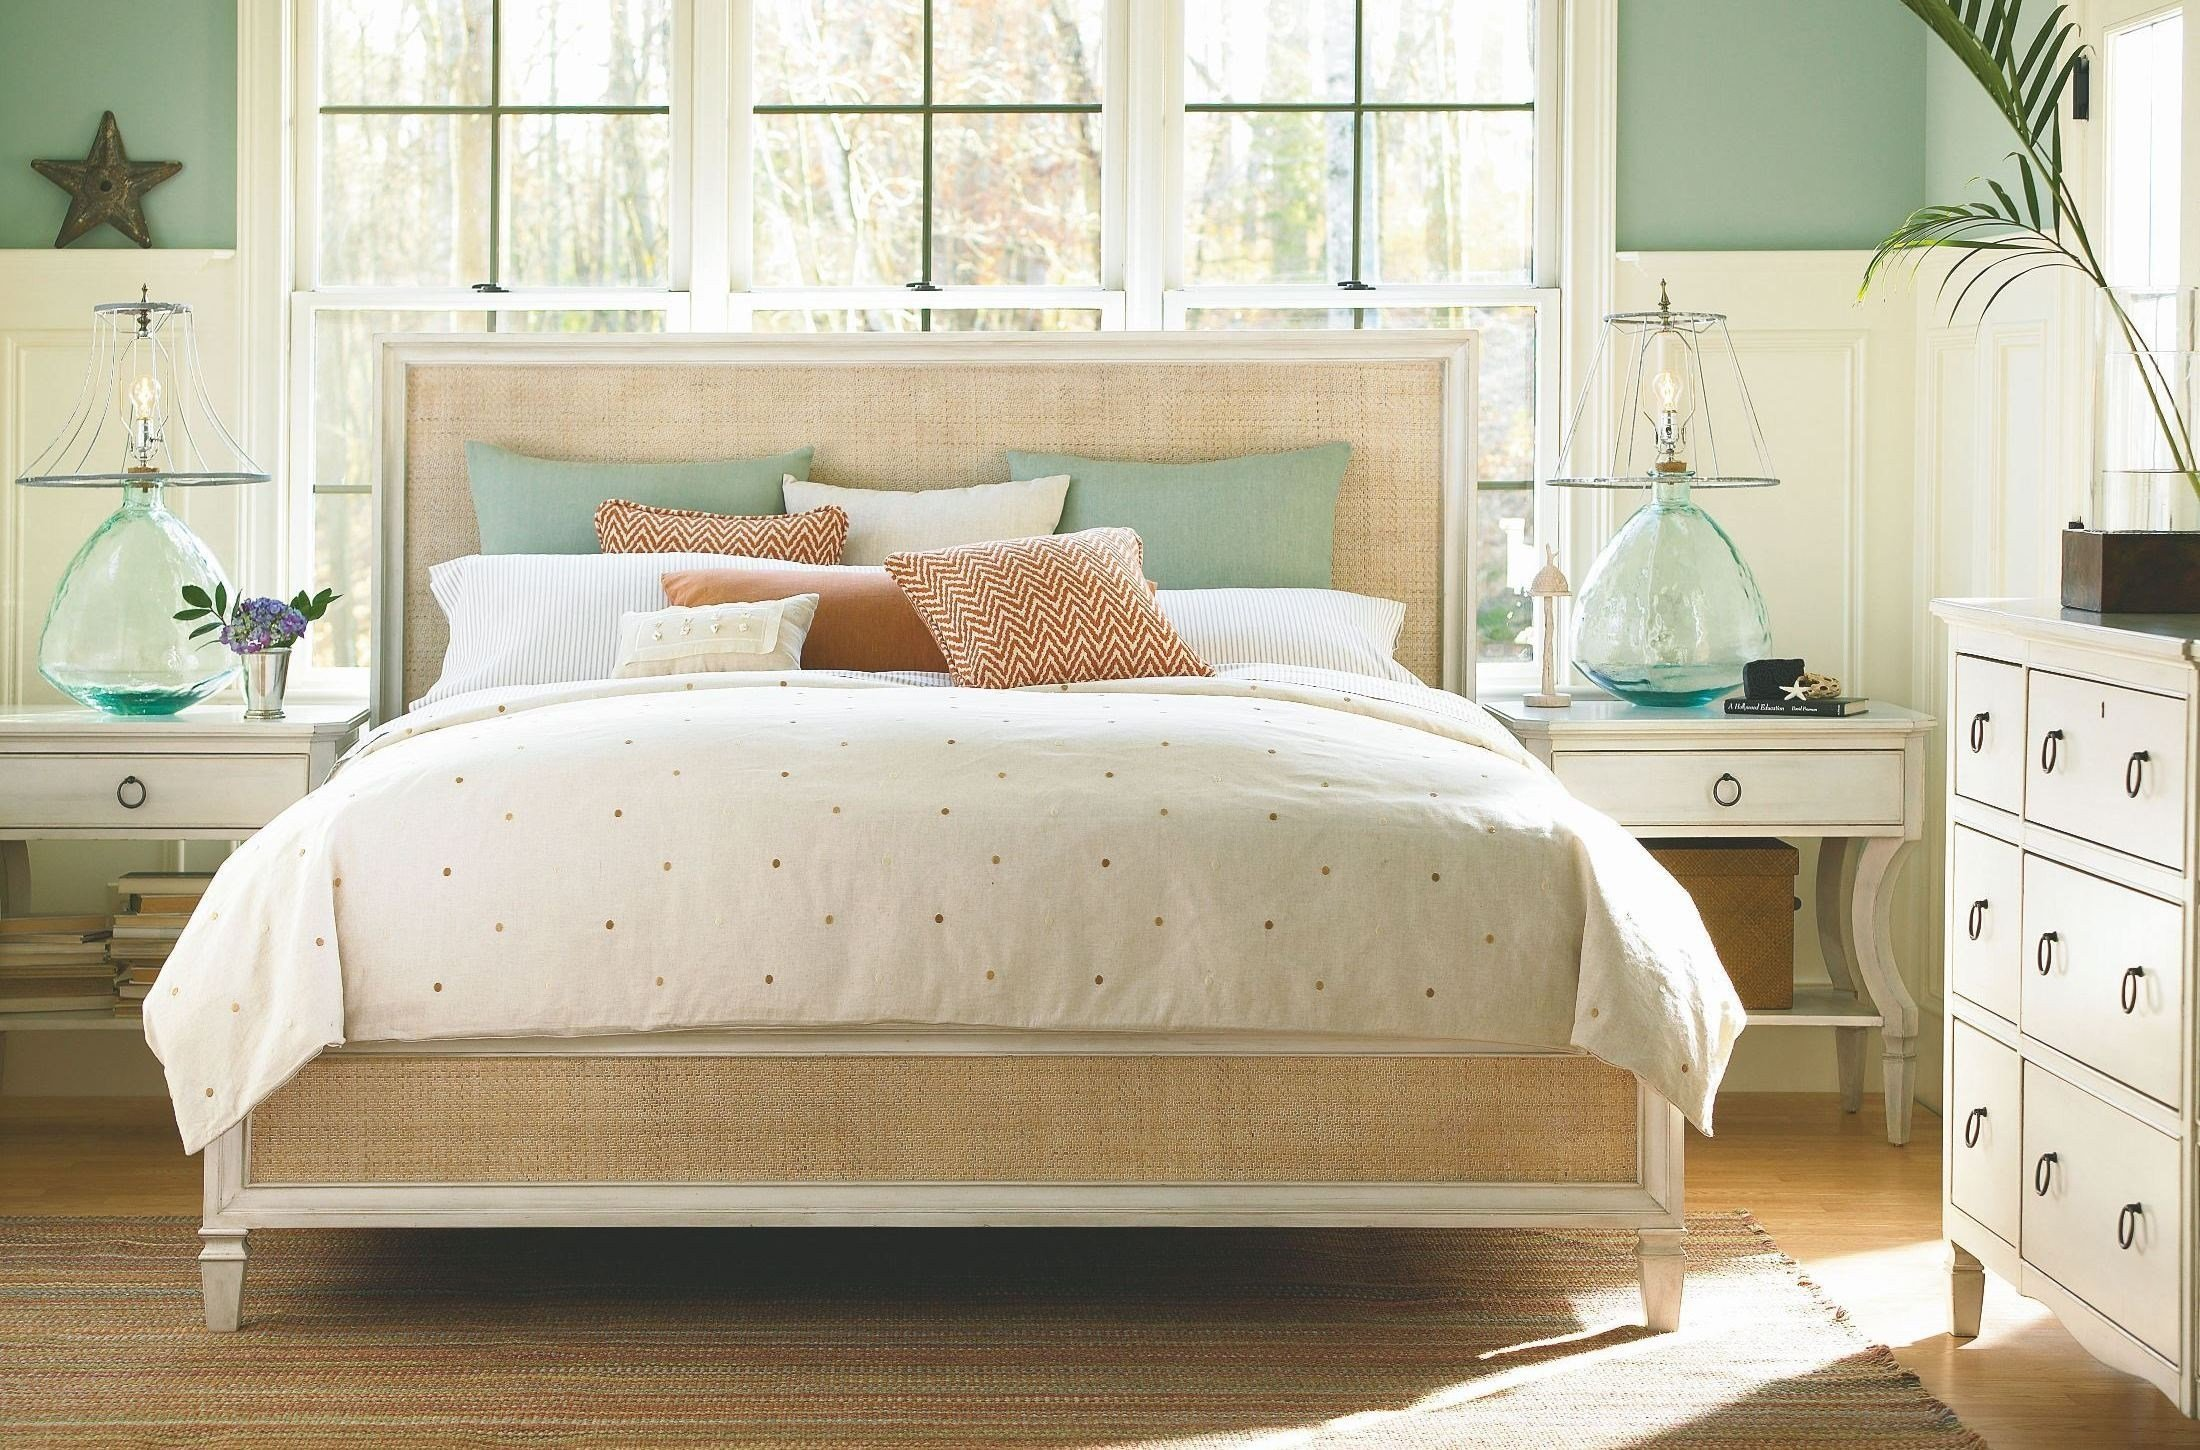 Best Summer Hill White Woven Accent Bedroom Set From Universal With Pictures